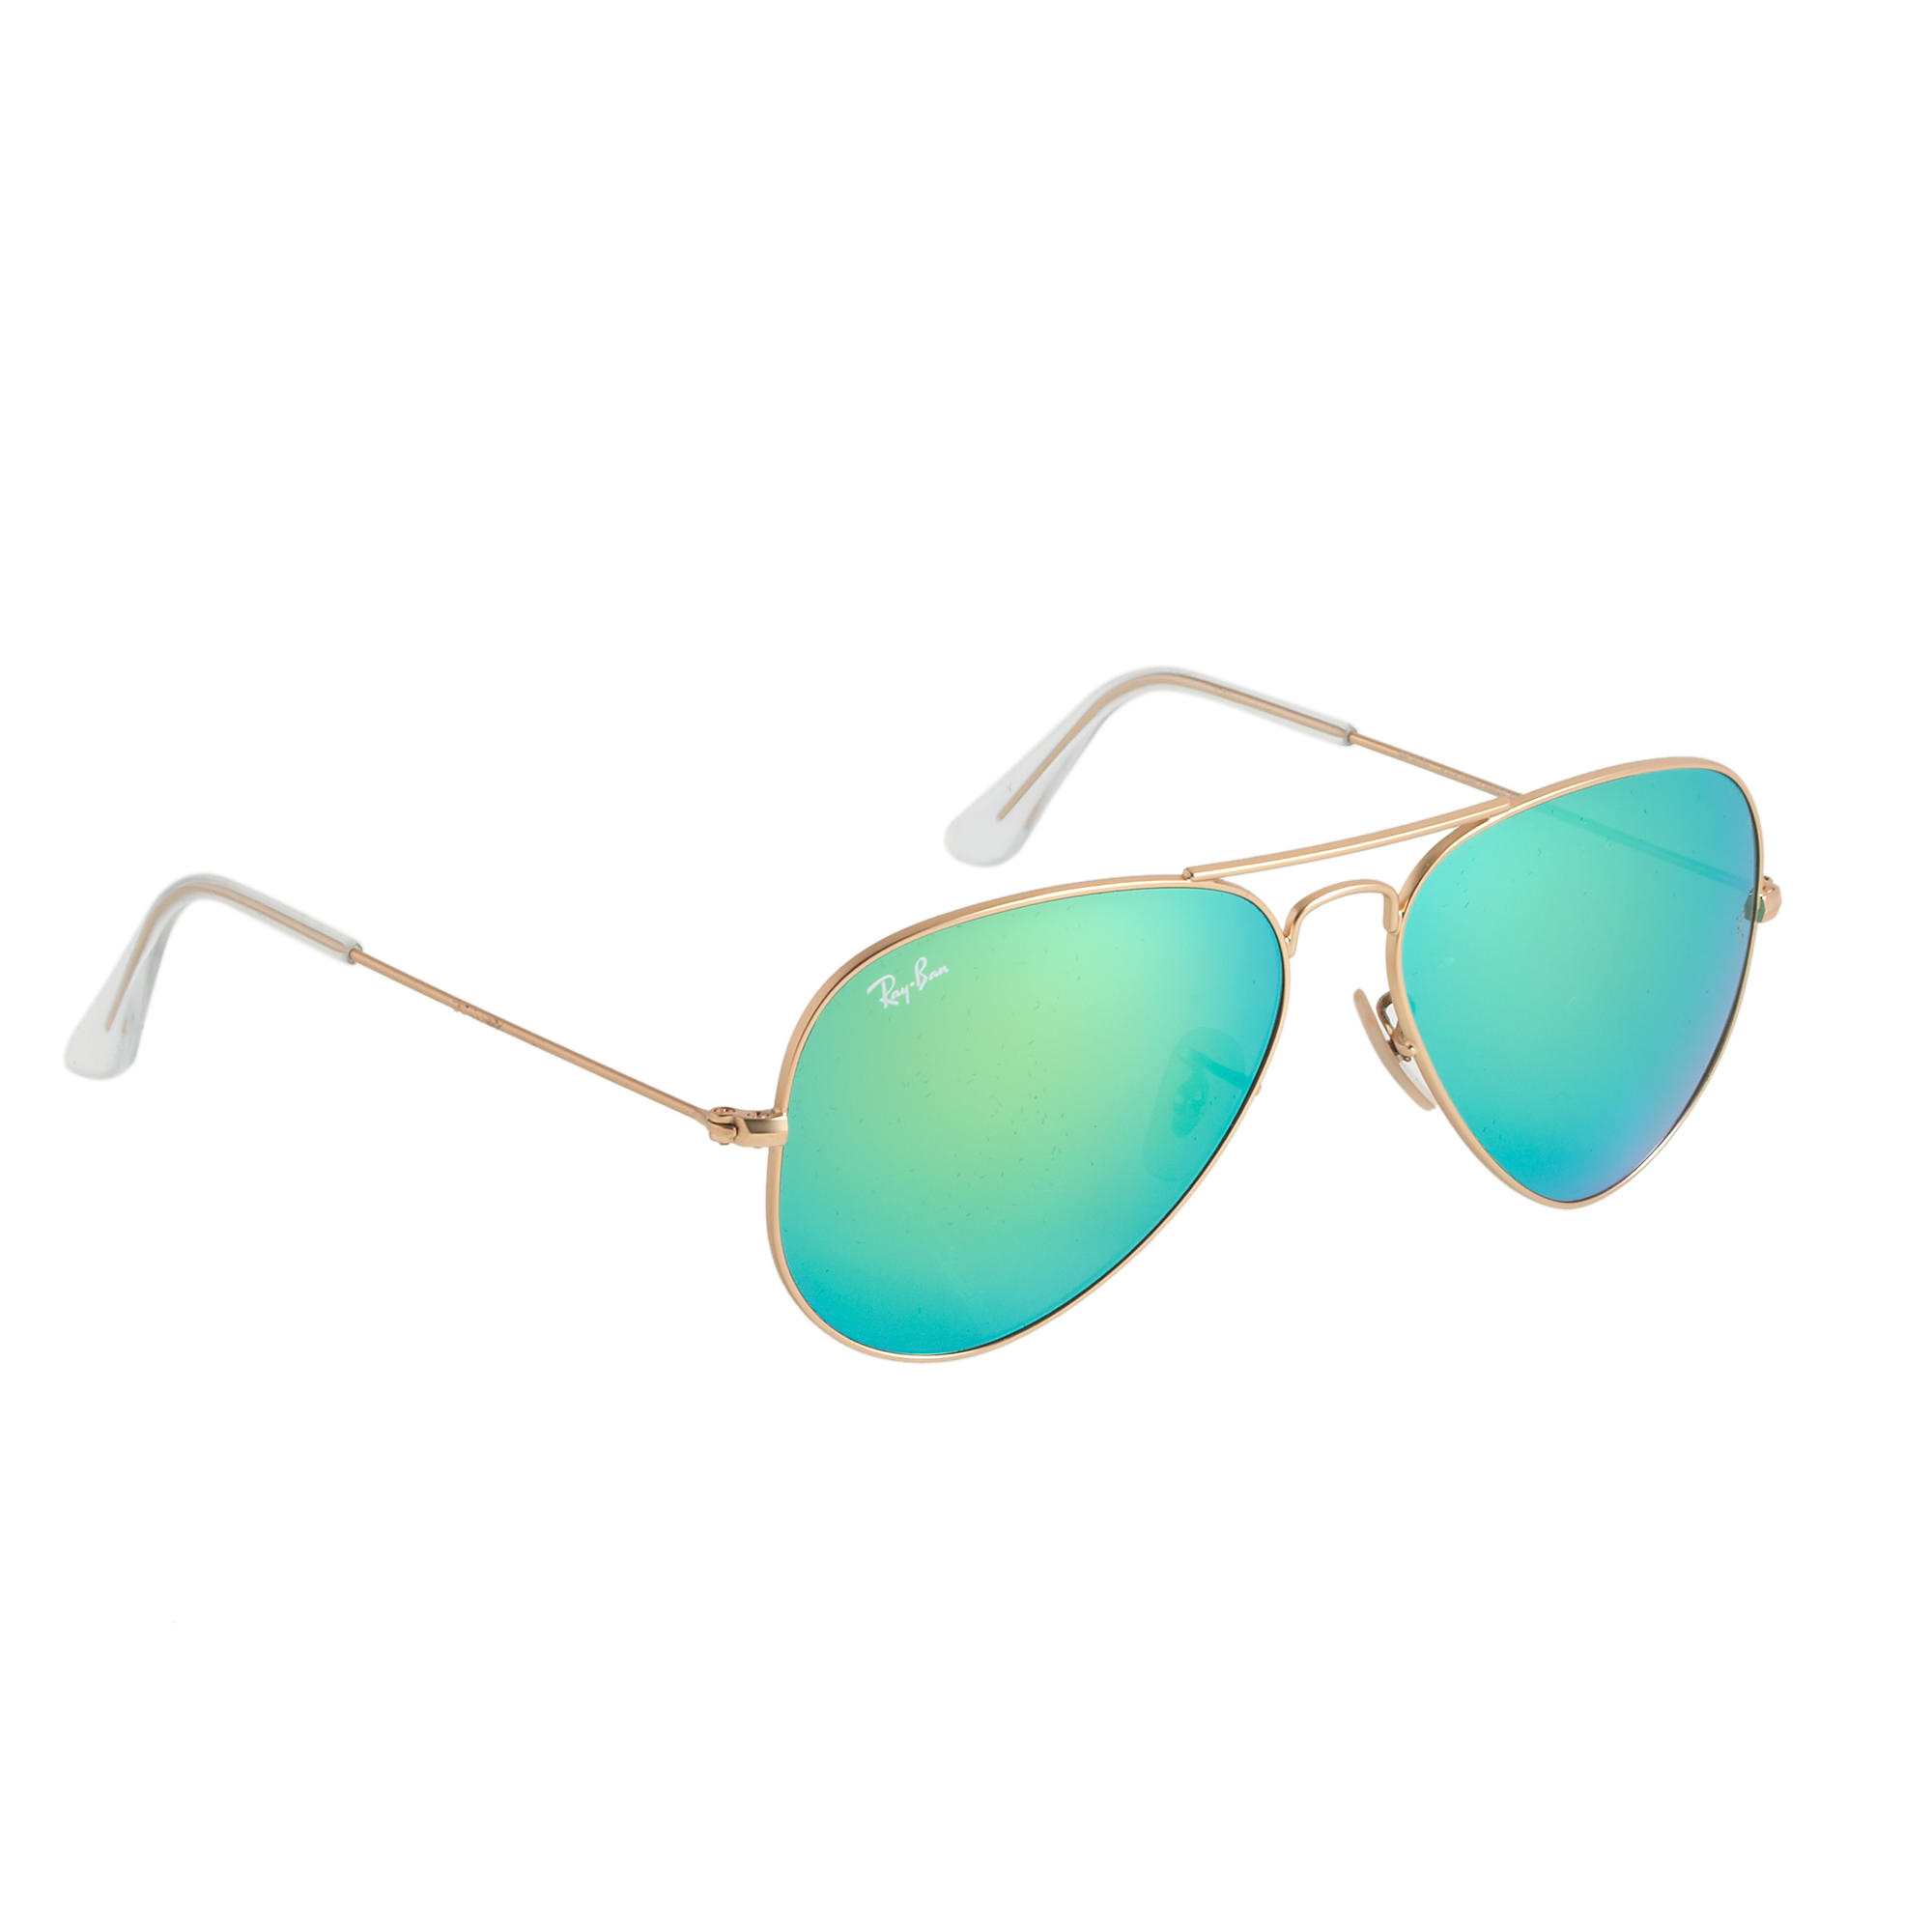 46339696a J.Crew Ray-ban Aviator Sunglasses With Polarized Mirror Lenses in ...